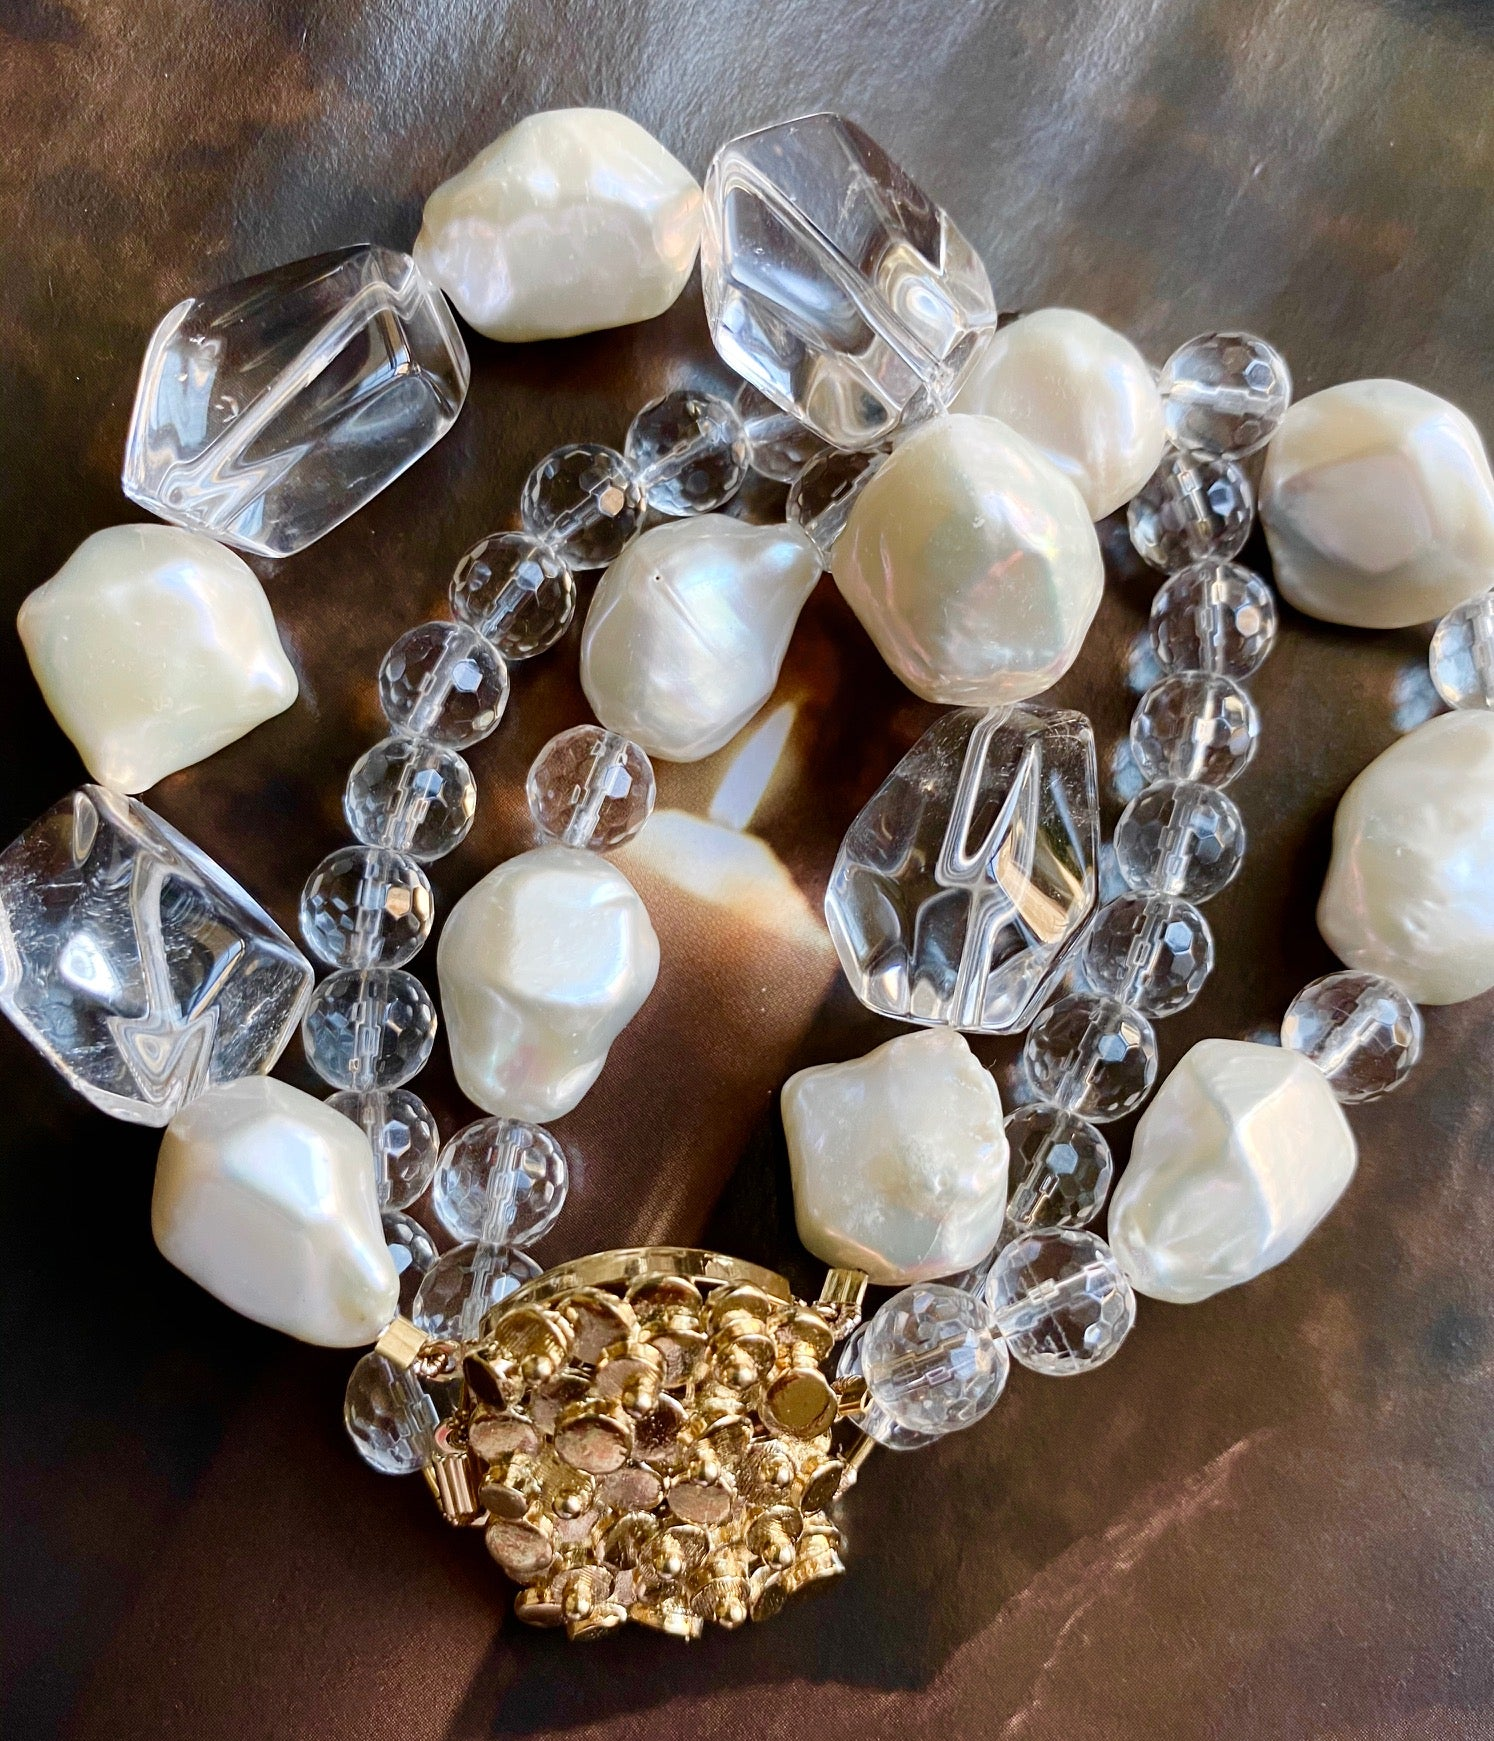 The bracelet made of crystal clear quartz and baroque pearls brings the sparkling joy and freshness. The unique gold plated silver clasp makes this piece made for the keeps